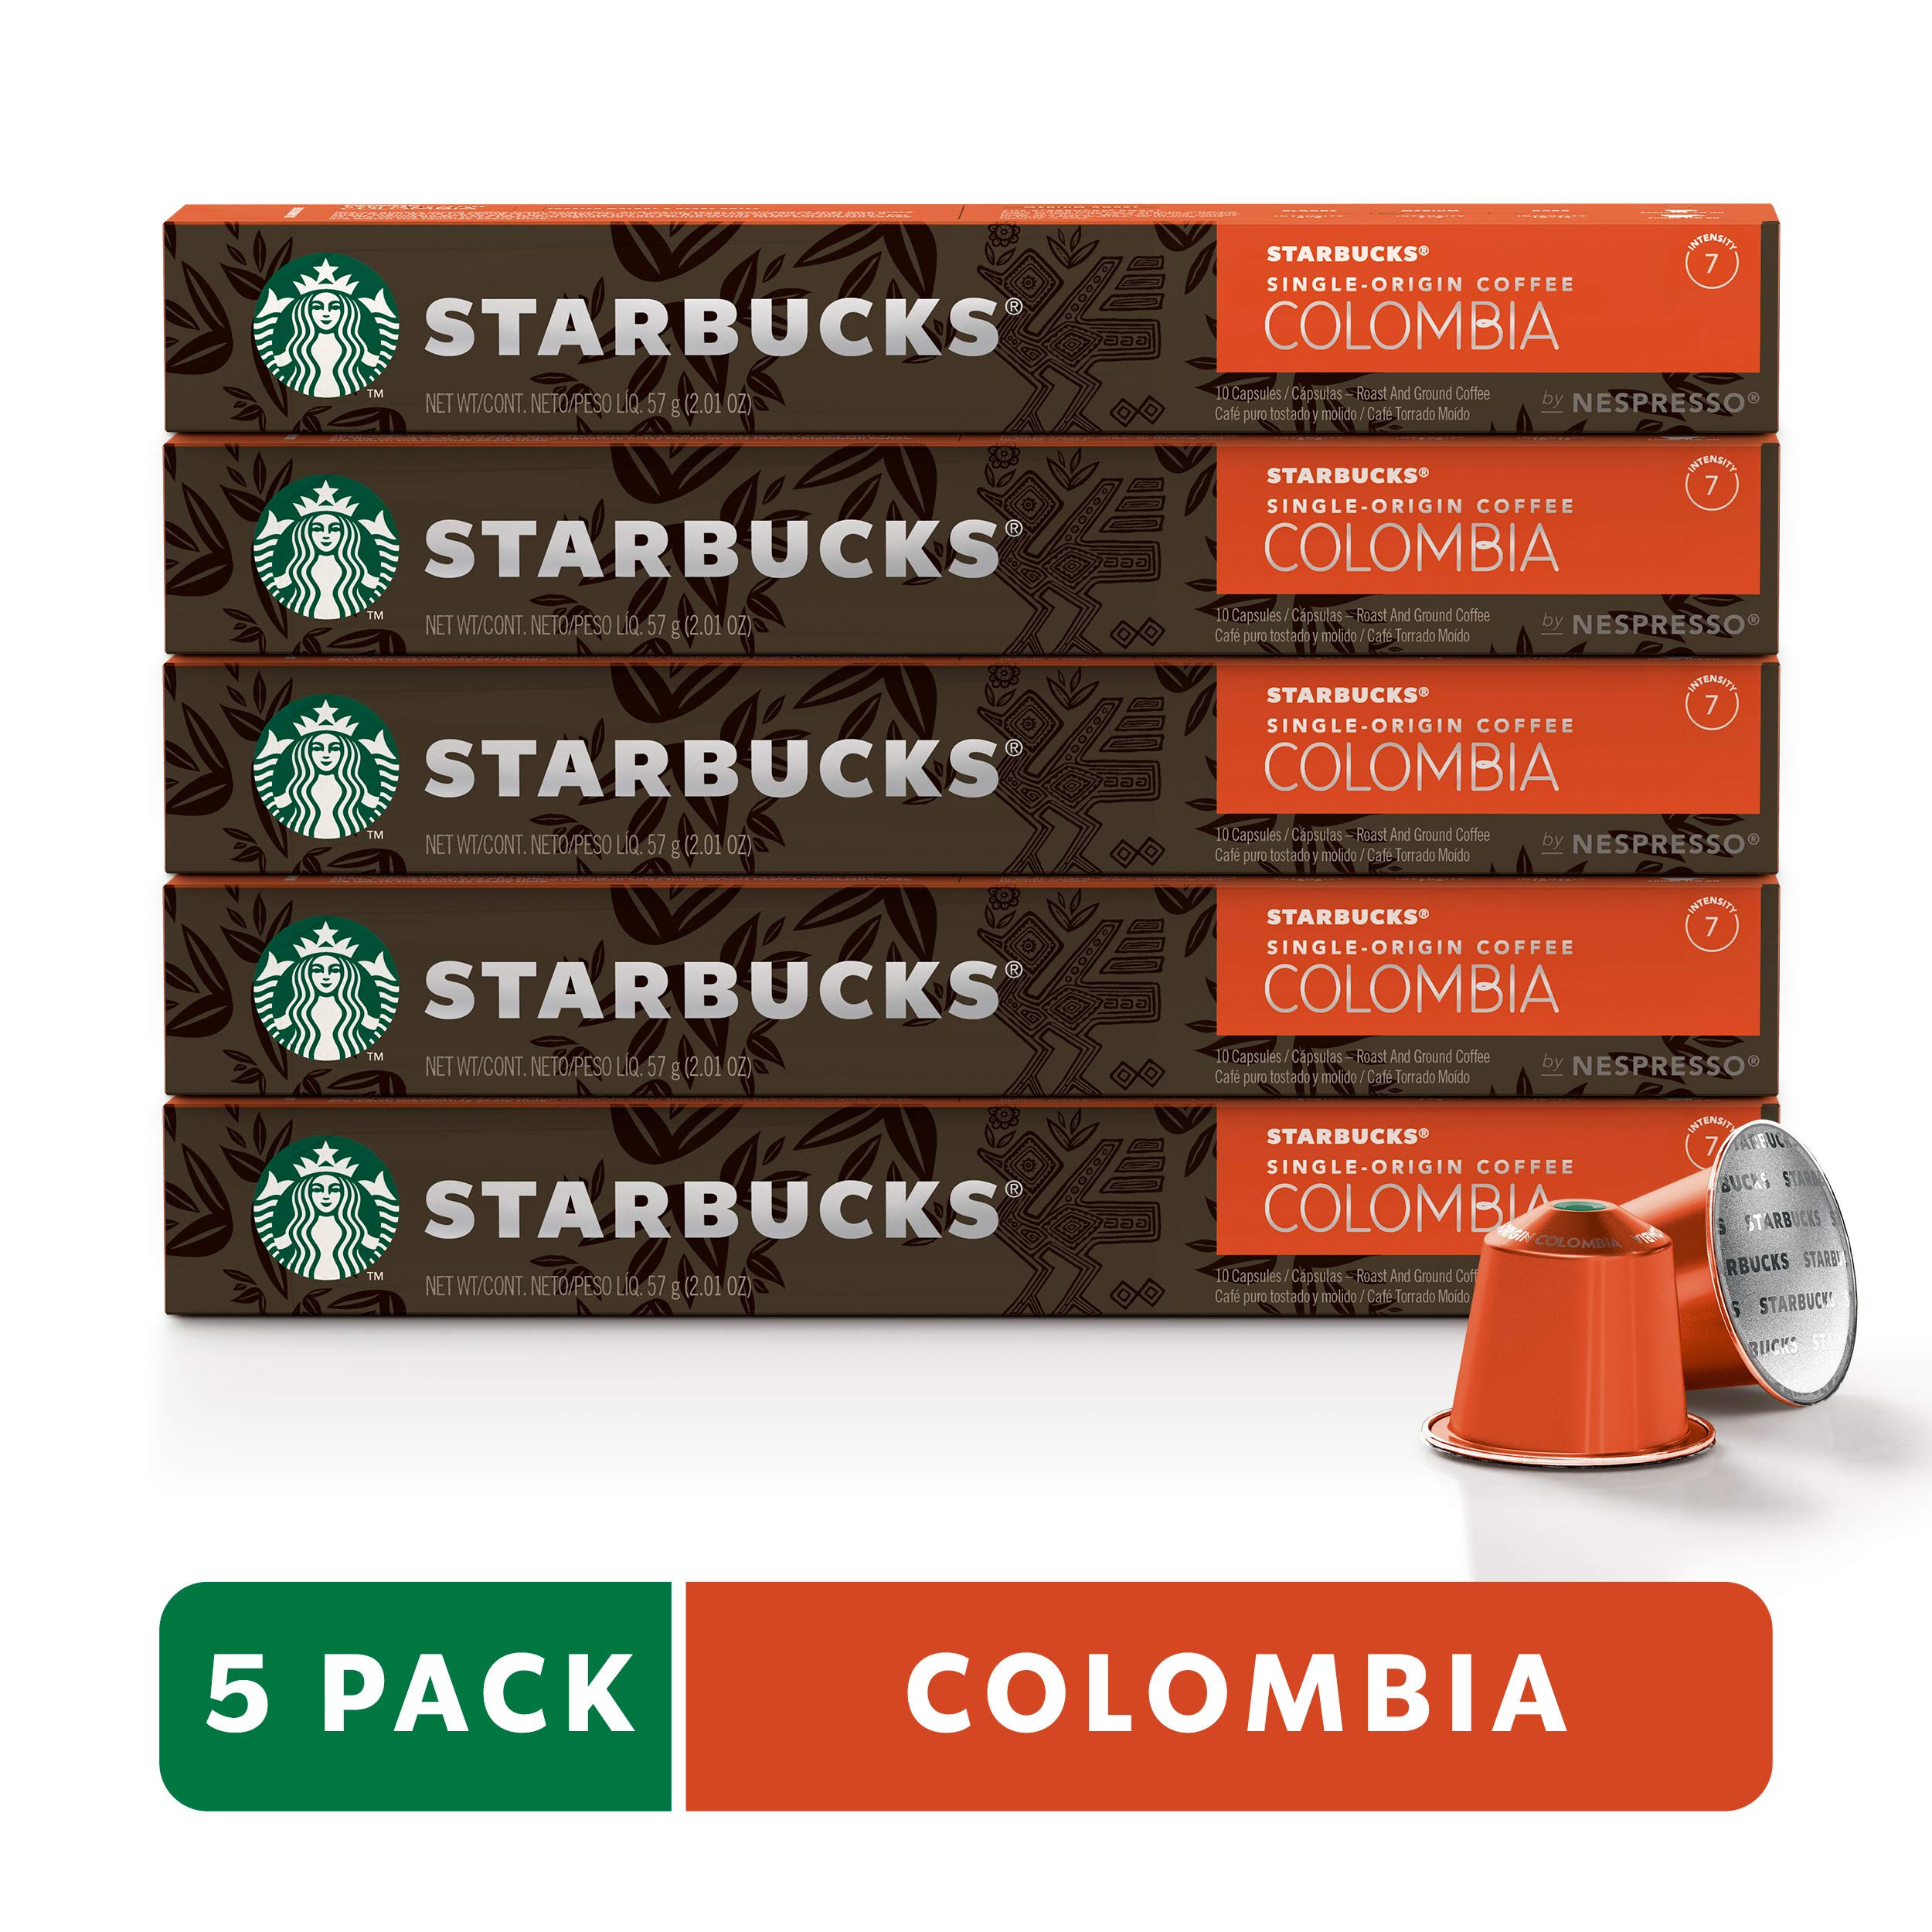 Starbucks by Nespresso, Single-Origin Colombia (50-count single serve capsules, compatible with Nespresso Original Line System) by Starbucks for Nespresso (Image #1)